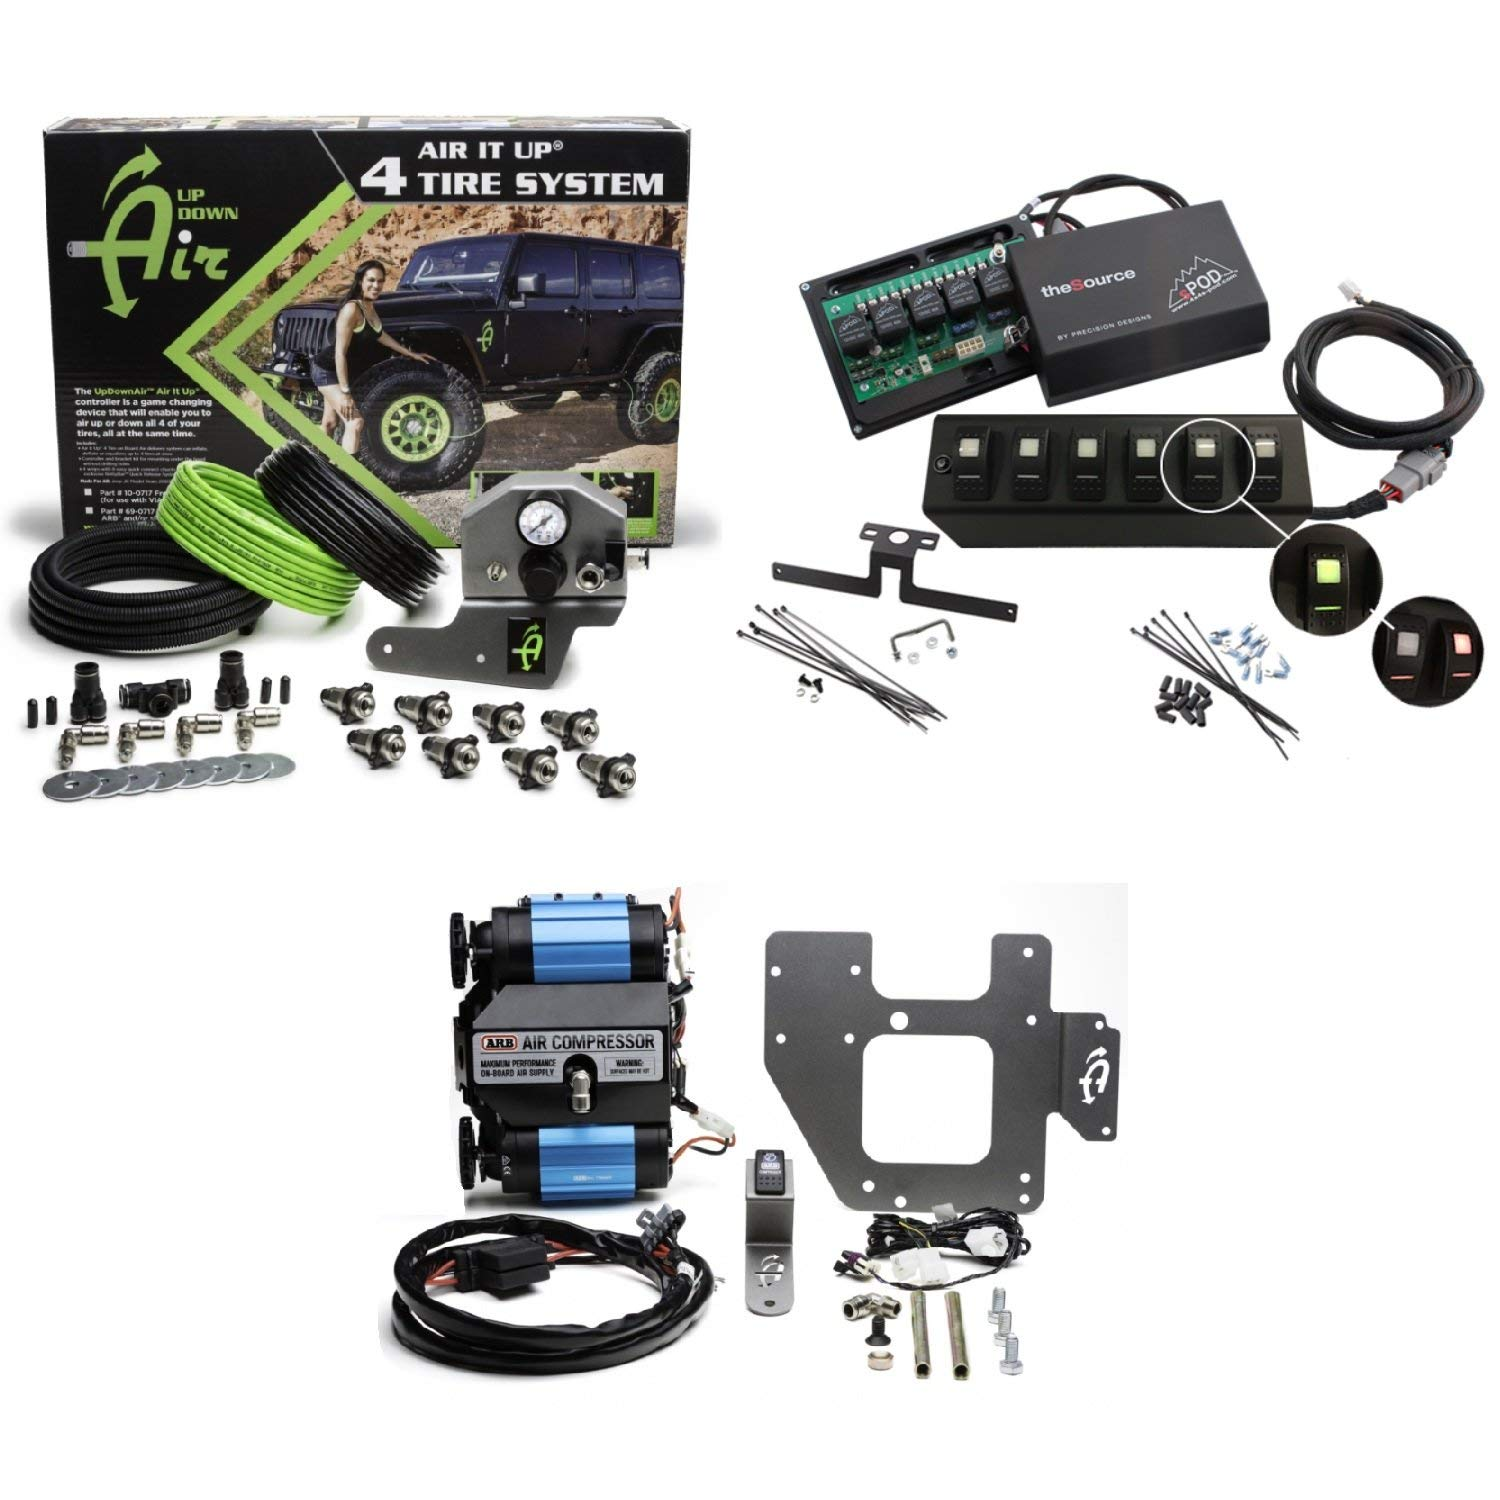 Up Down Air 22-7810/69-0717 Air it up 4 Tire On Board Air Delivery w/ARB CKMTA12 Compressor & sPOD 600-07LT-LED-B Double LED Contura Rocker All Blue 6 Switch & Source System for 07-08 Wrangler JK